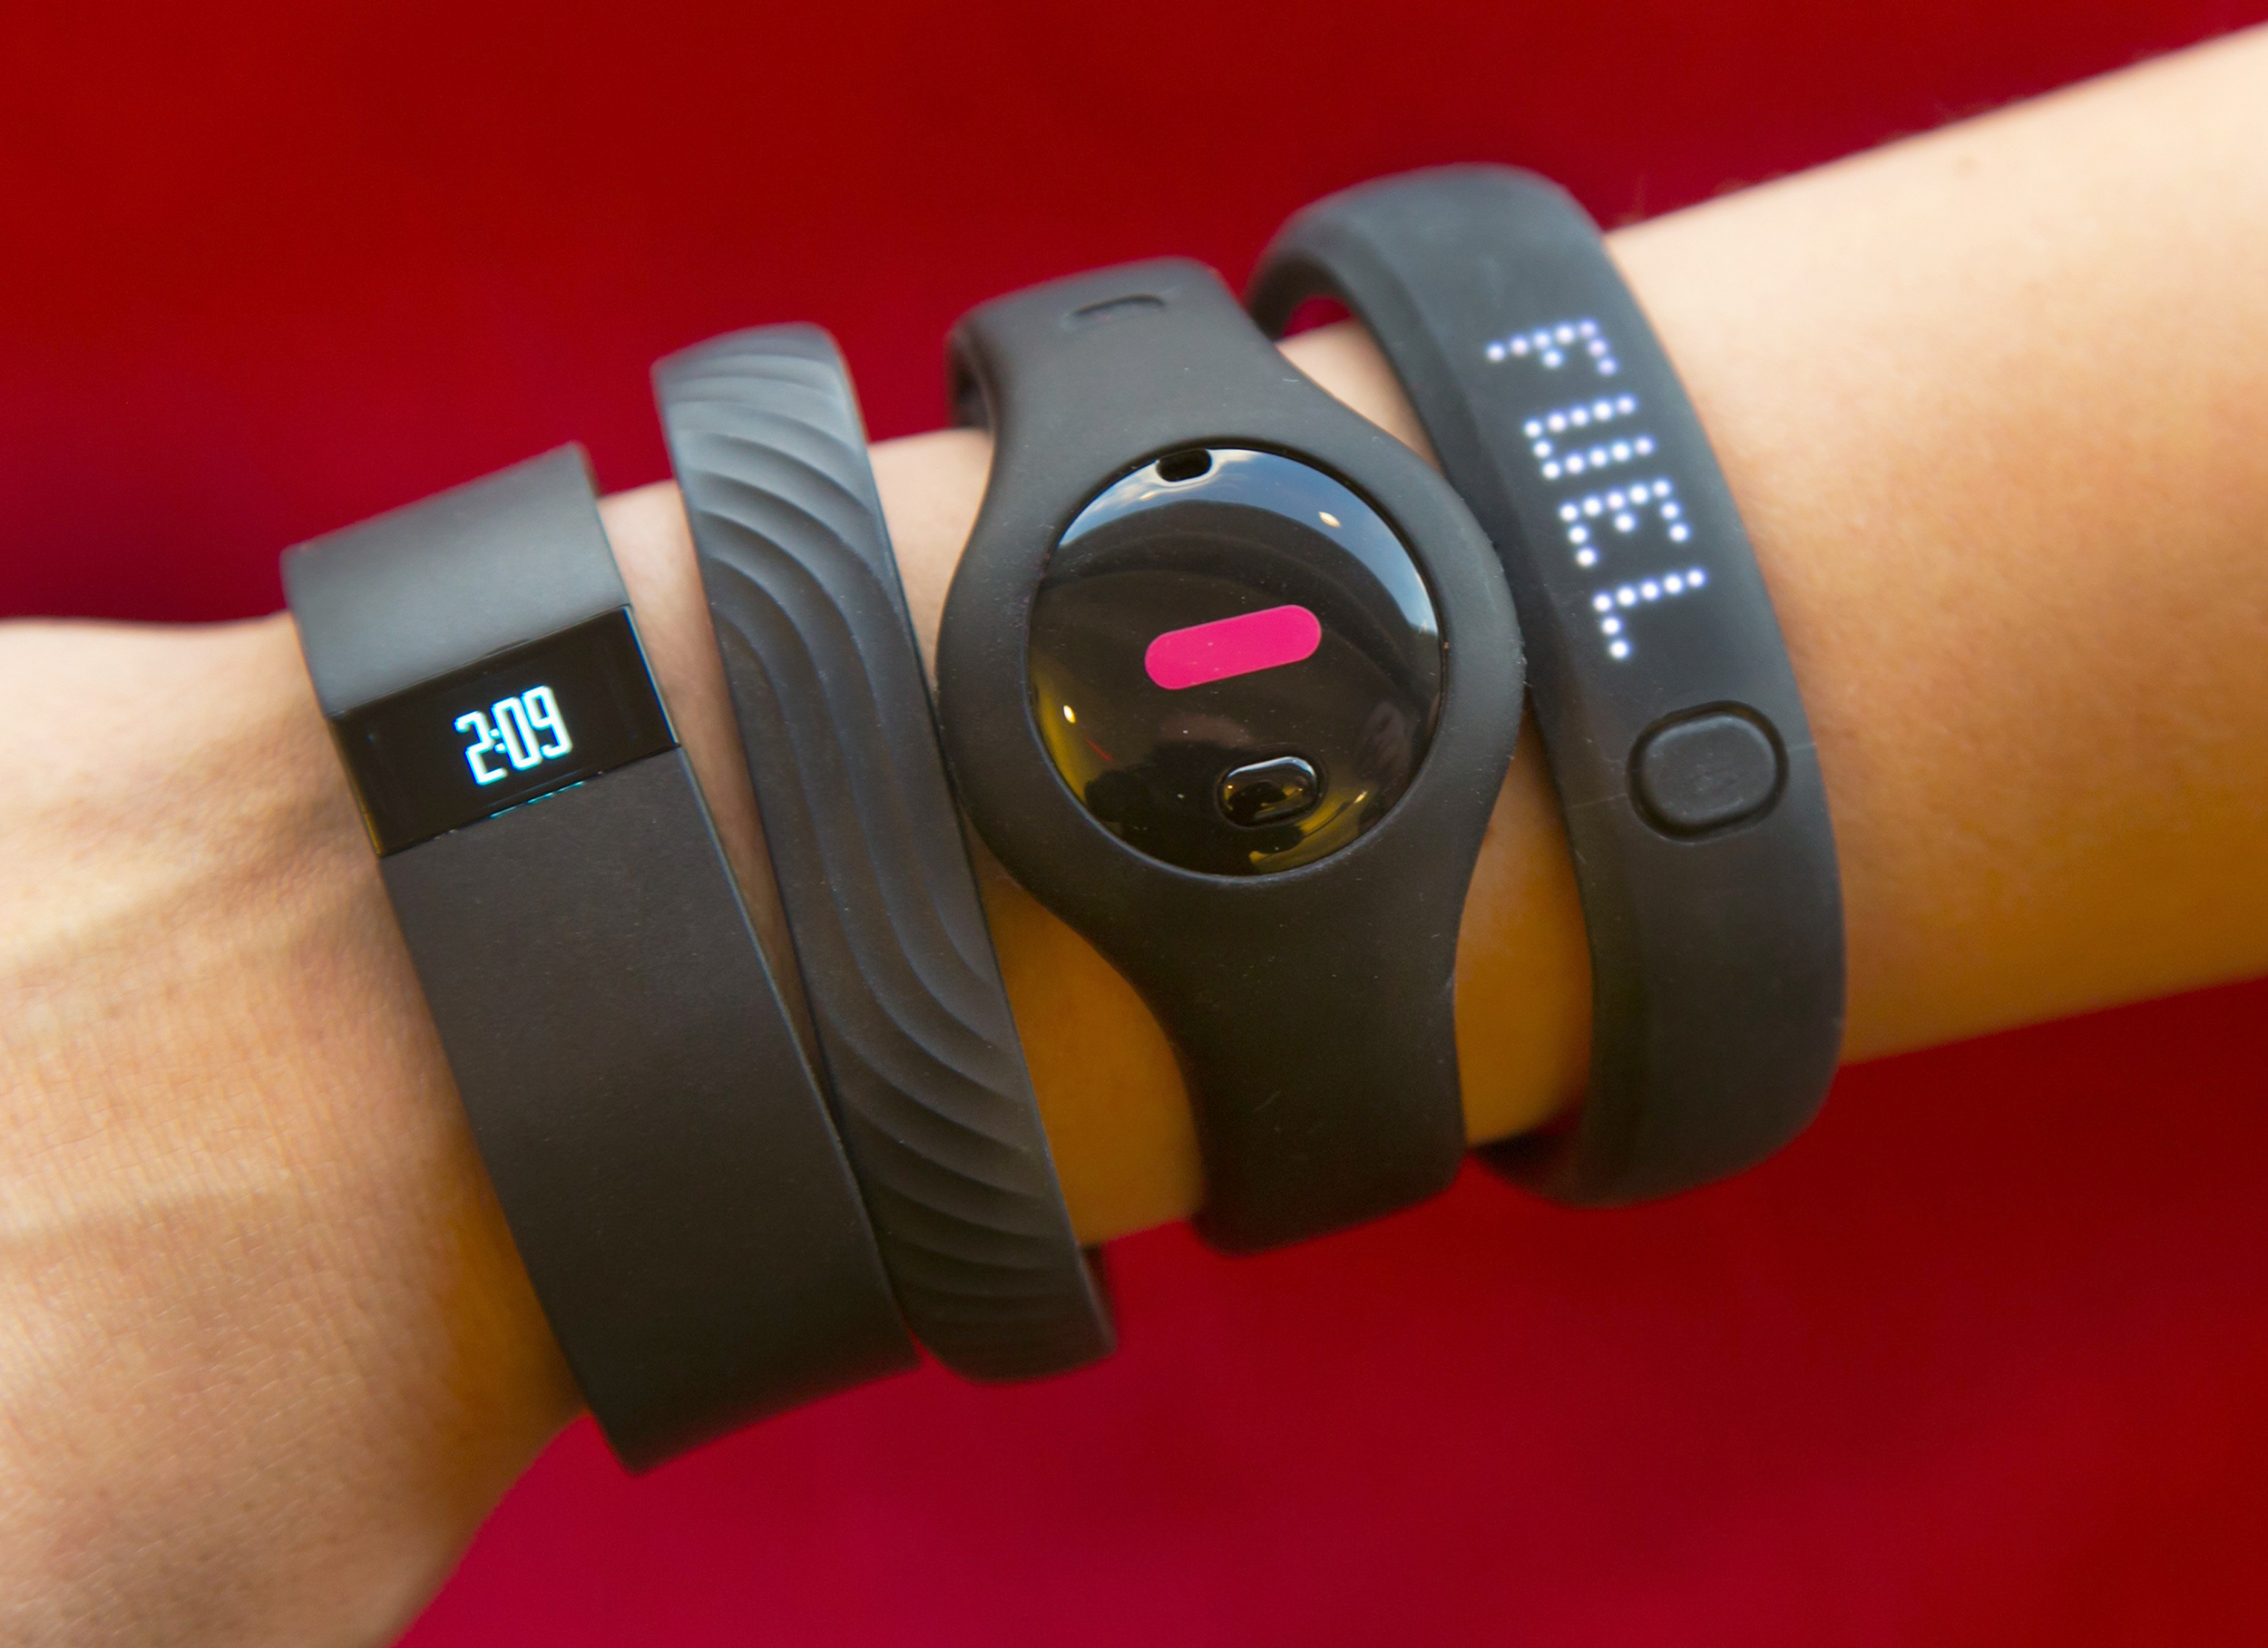 fitness-tracking-device-today-150630-01_82b77fe65b693c80fb4408c82903b5d7.jpg